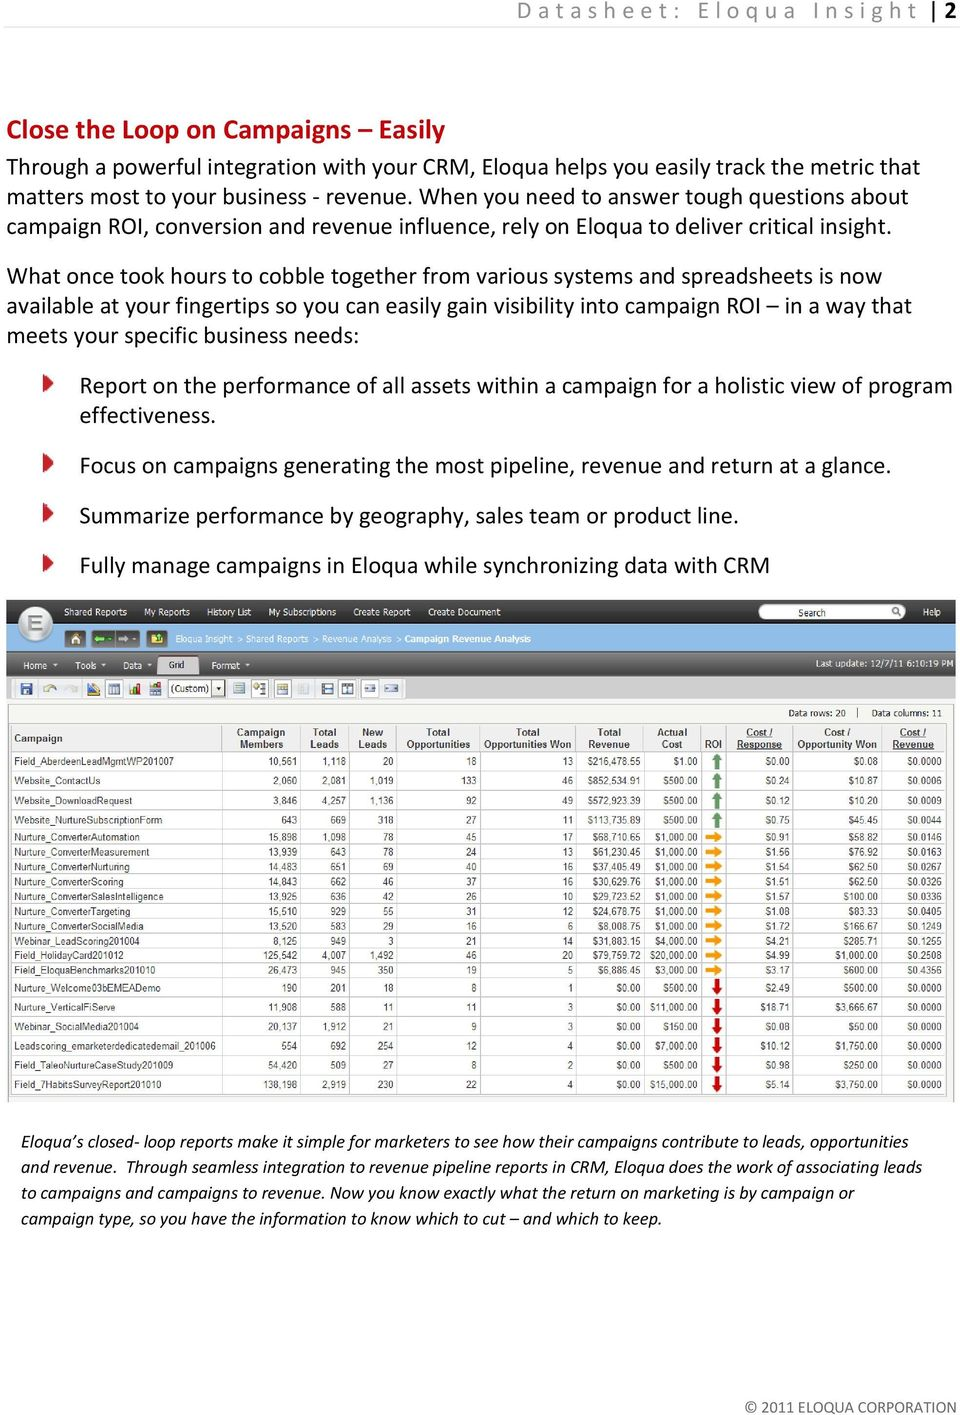 What once took hours to cobble together from various systems and spreadsheets is now available at your fingertips so you can easily gain visibility into campaign ROI in a way that meets your specific